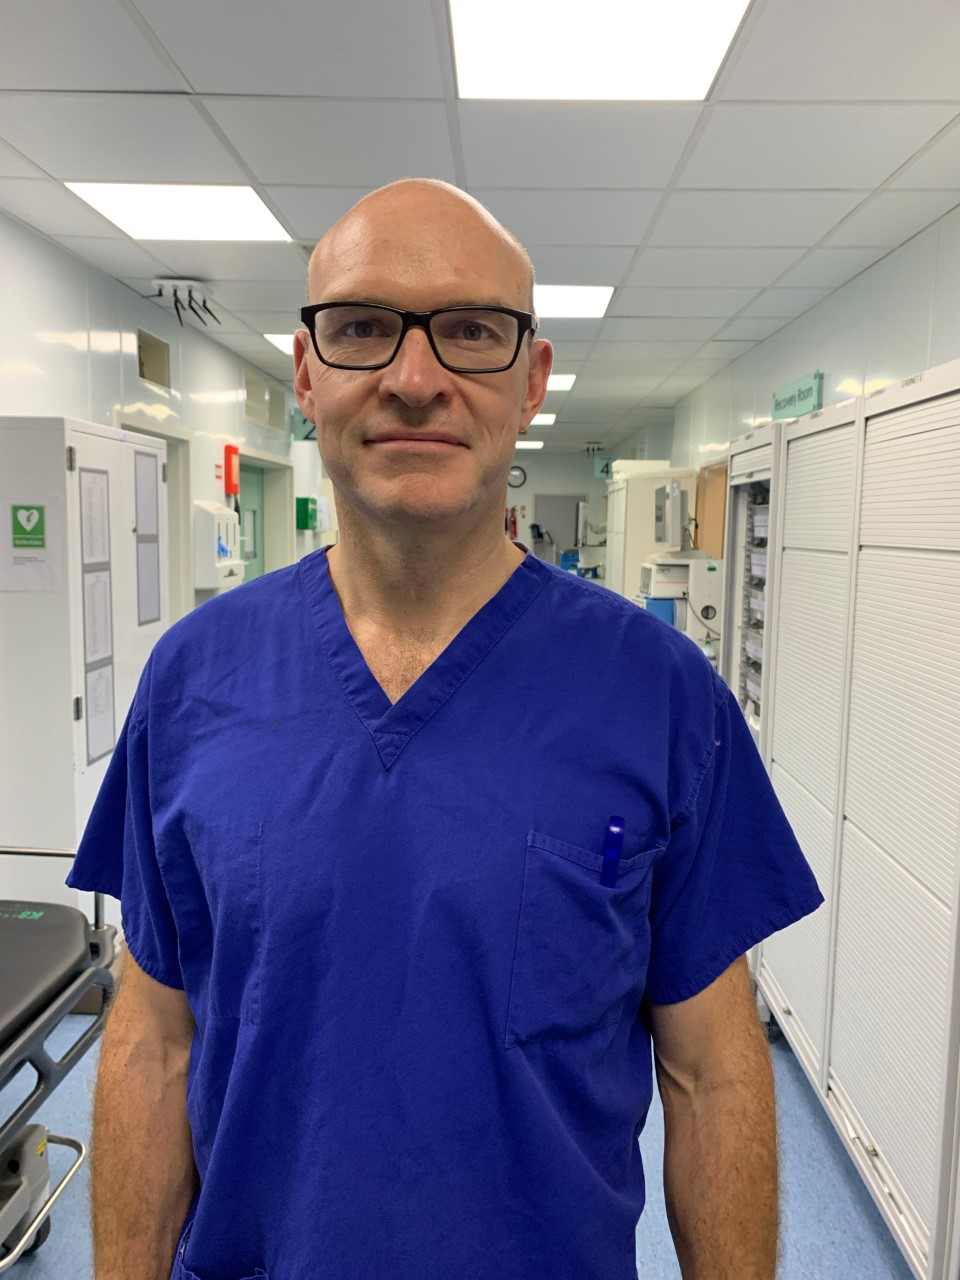 Consultant Orthopaedic Surgeon